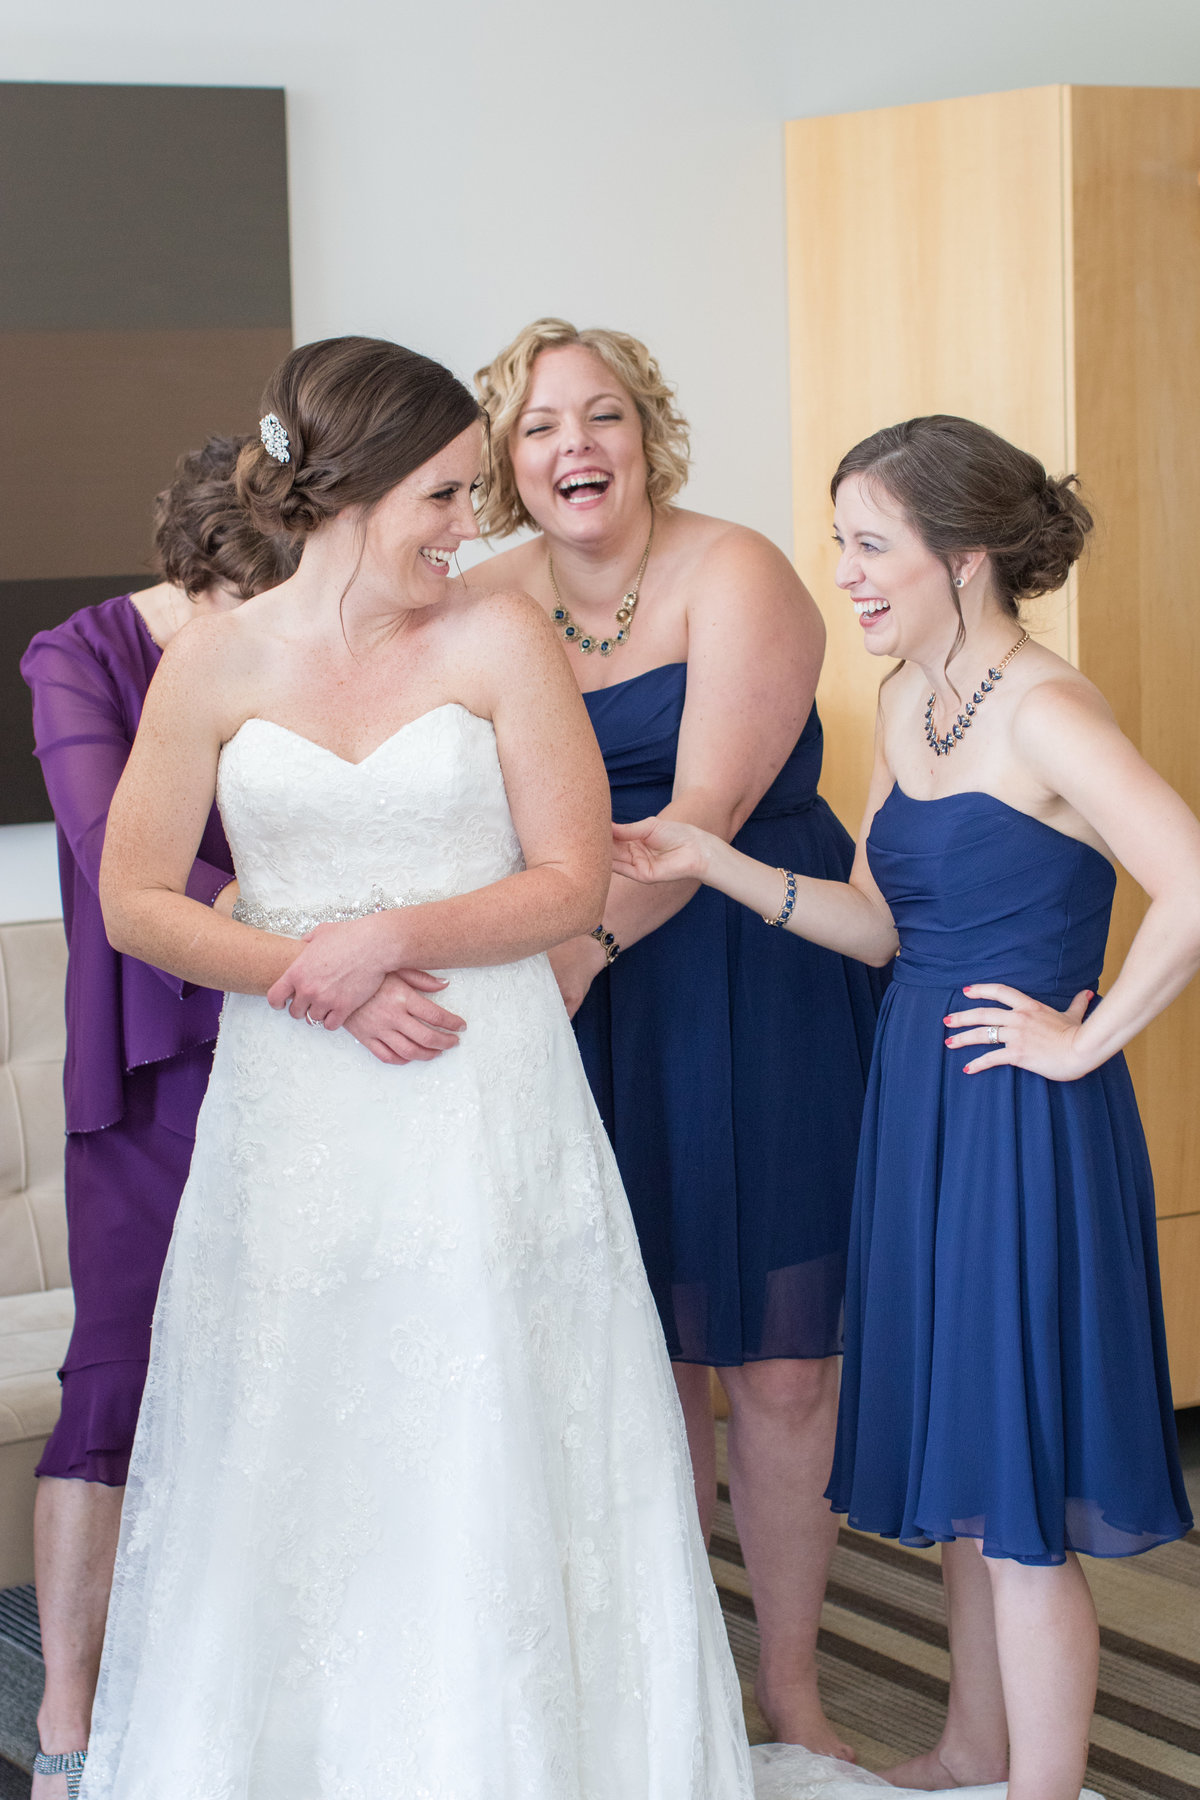 candid-bridesmaid-getting-ready-picture-wedding-photographer-chicago-aurora-photo